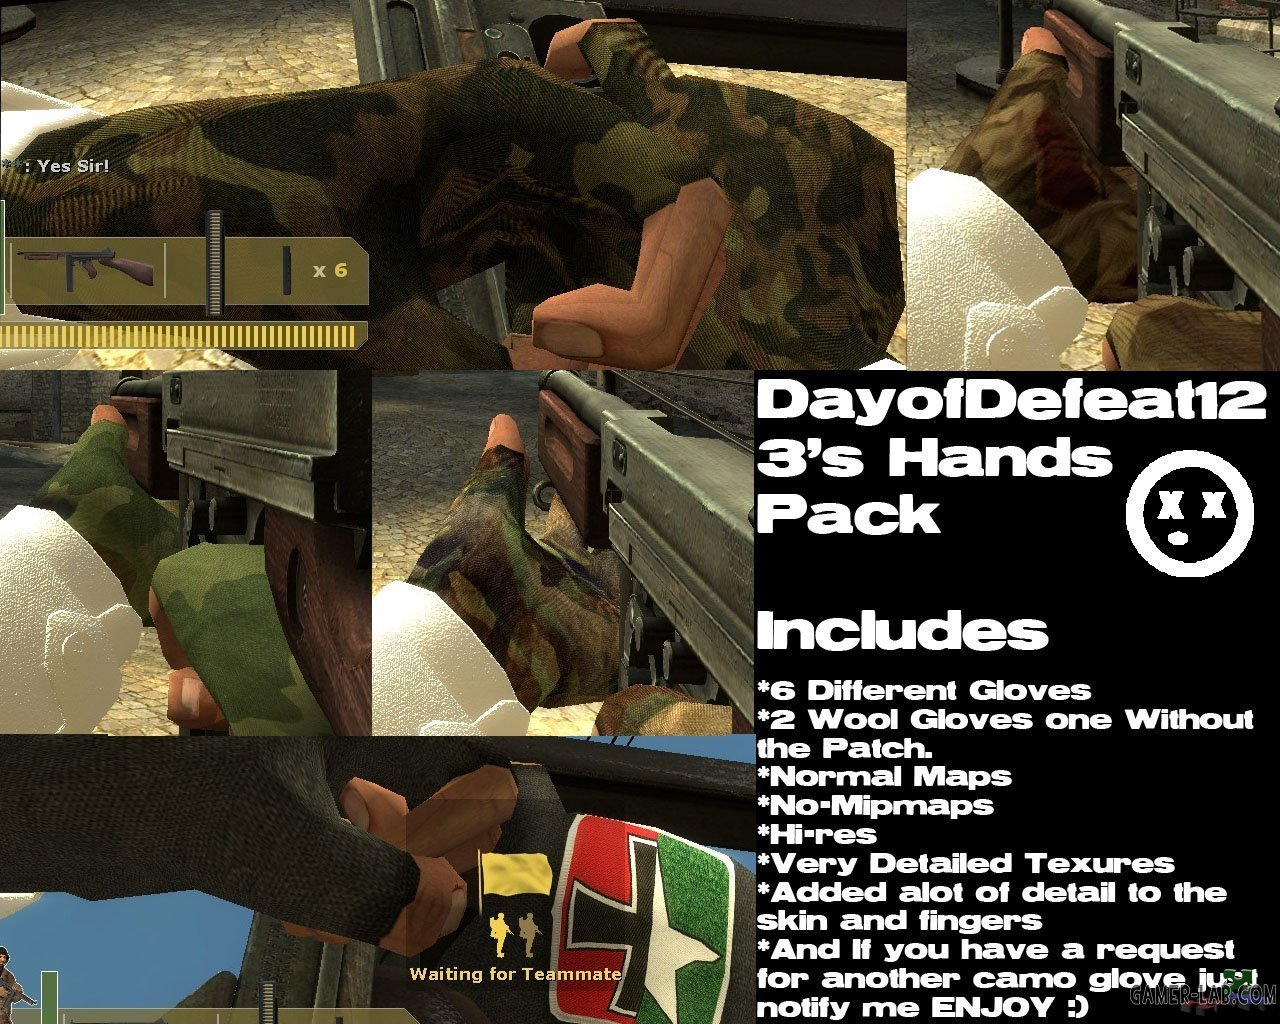 DayofDefeat123s_Glove_Pack